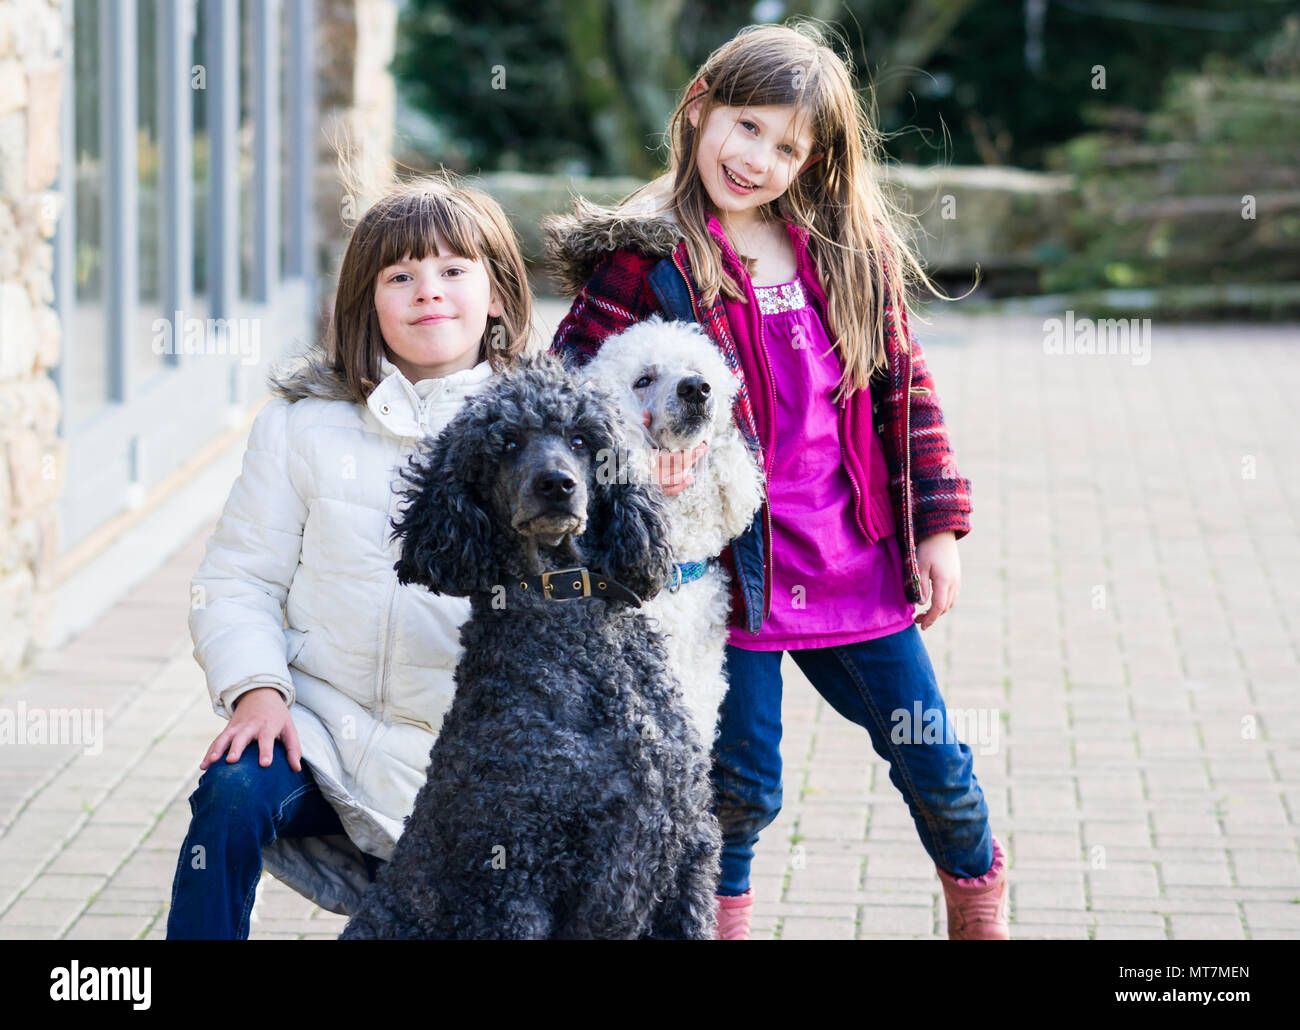 Two caucasian upper class Britsh girls (children) playing and posing with large pet standard poodles in natural coat in a rural country garden - Stock Image